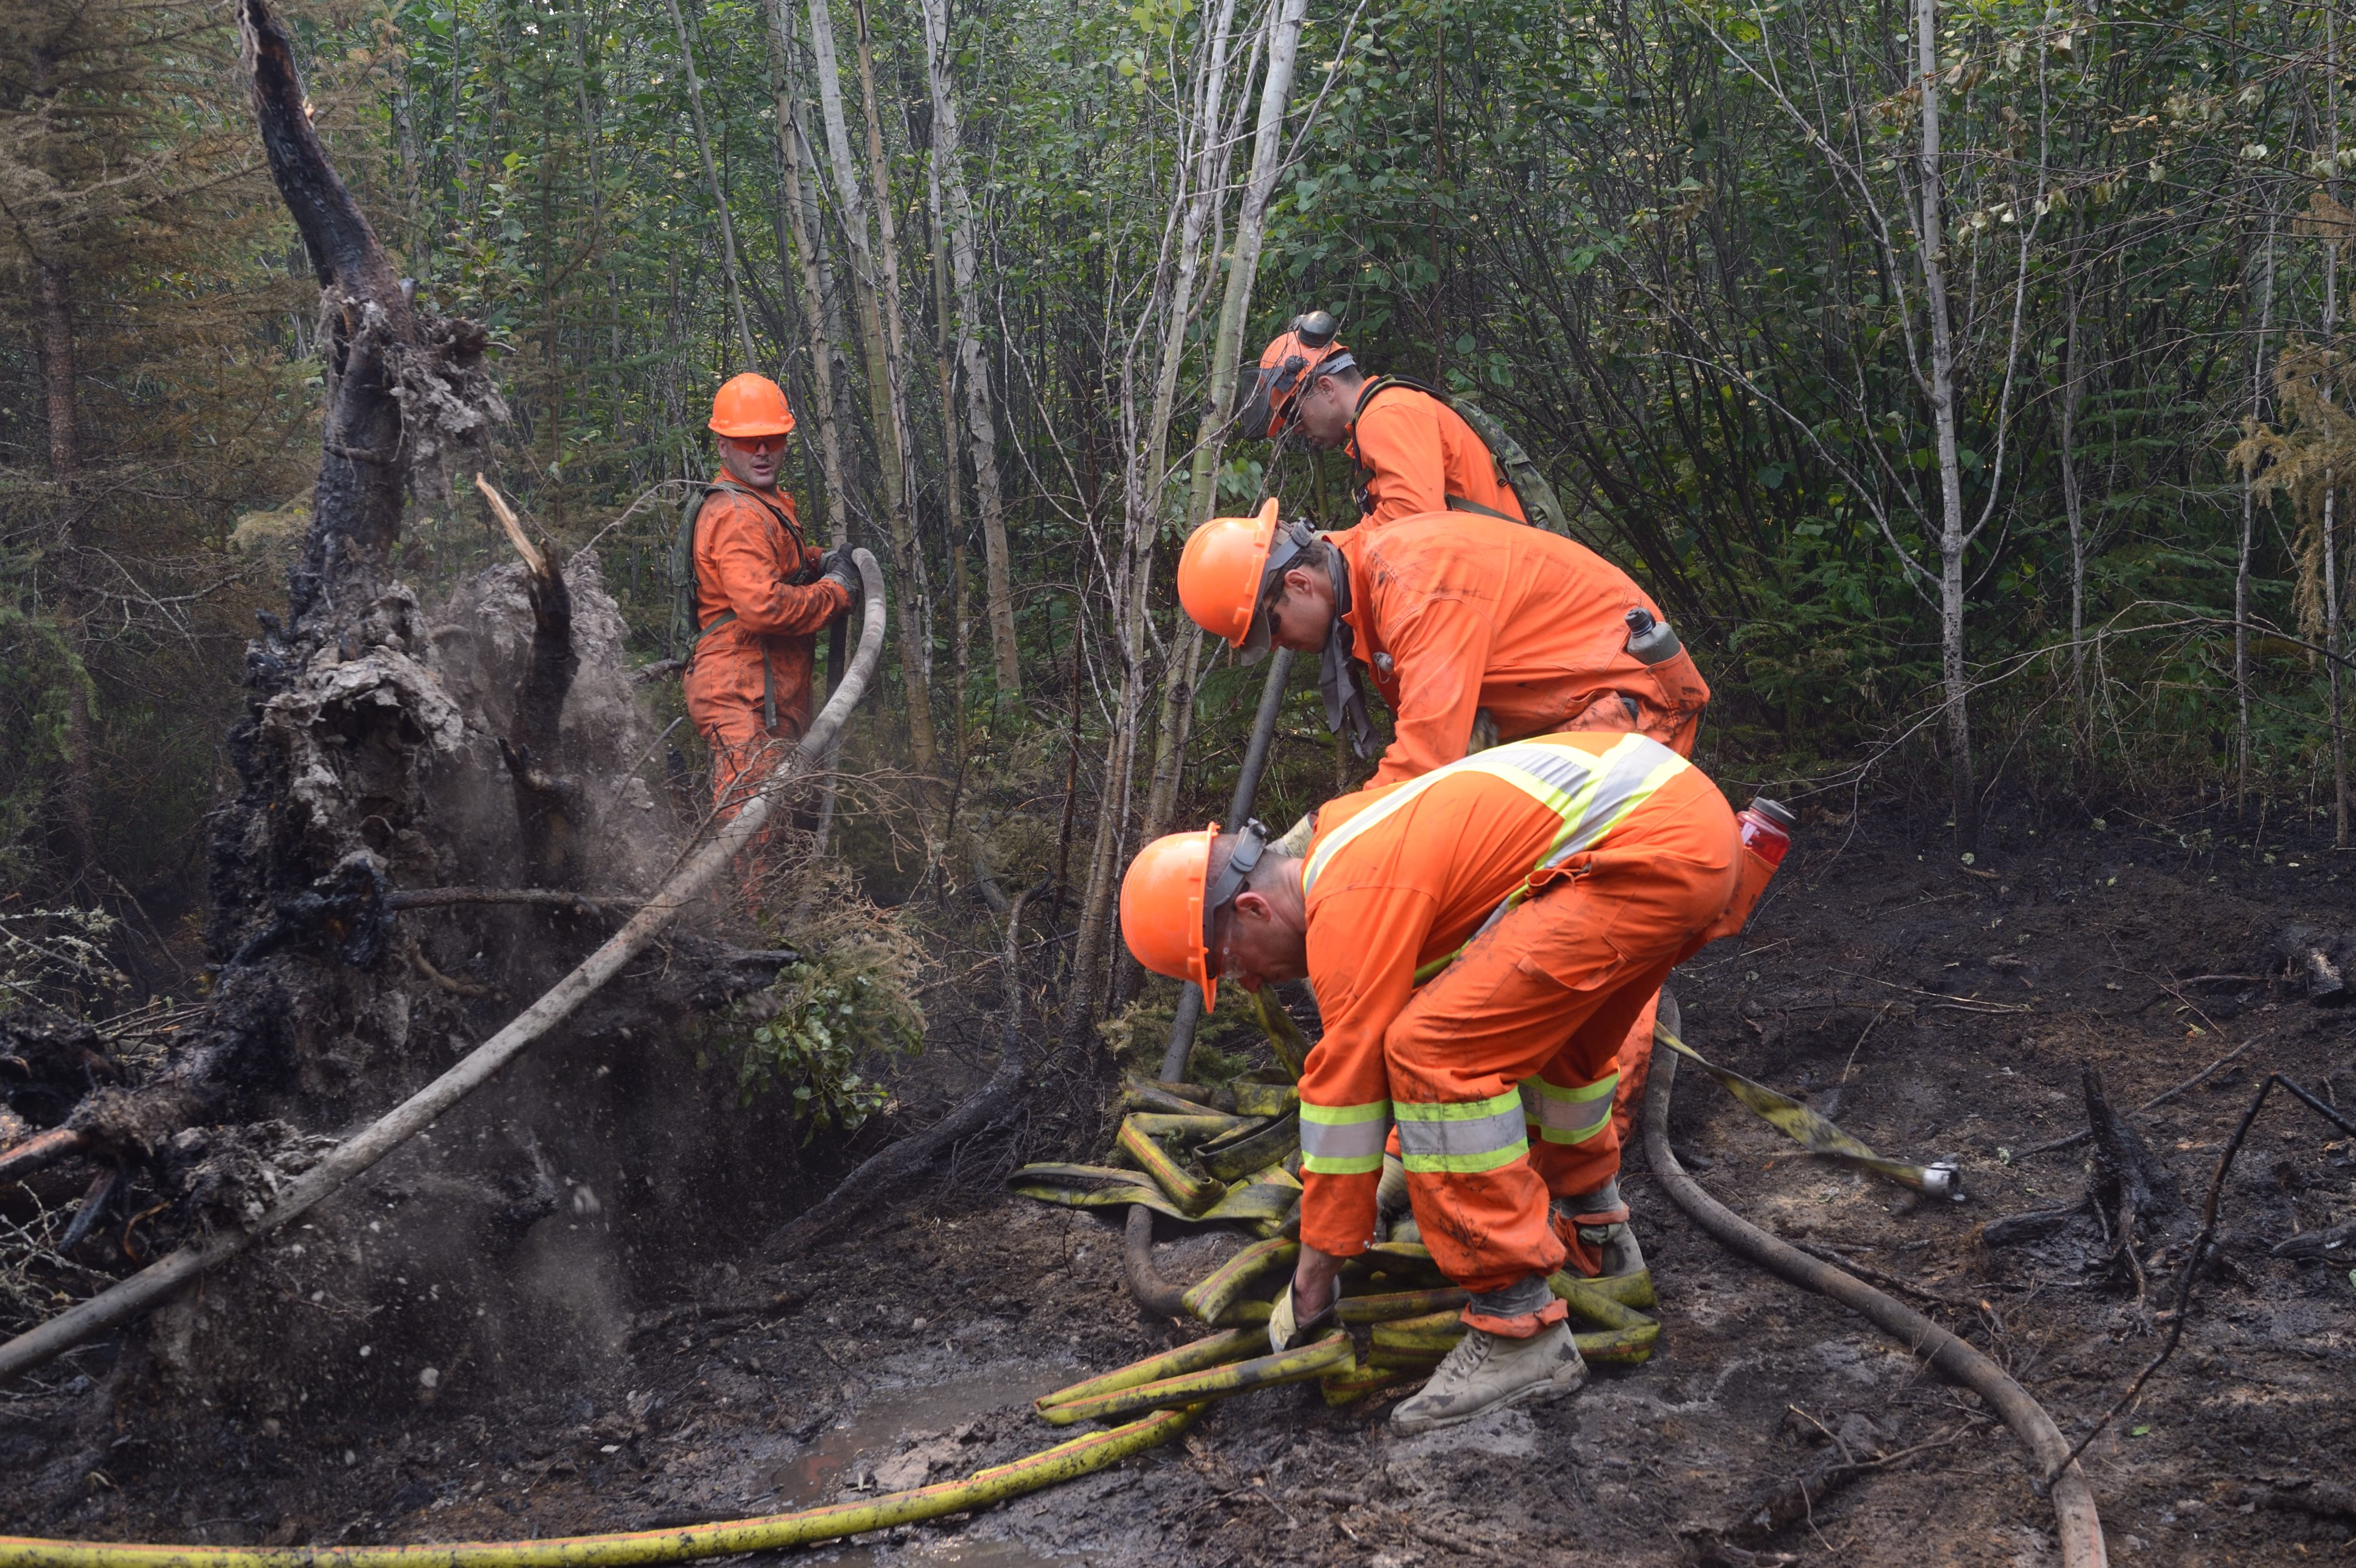 Members of 1 PPCLI B Company, Immediate Response Unit (West),extinguish a hot spot near La Ronge, Saskatchewan, during Operation LENTUS 15-02 on July 10, 2015. Photo by: MCpl Mélanie Ferguson, Canadian Army Public Affairs (LE2015-0053-09).